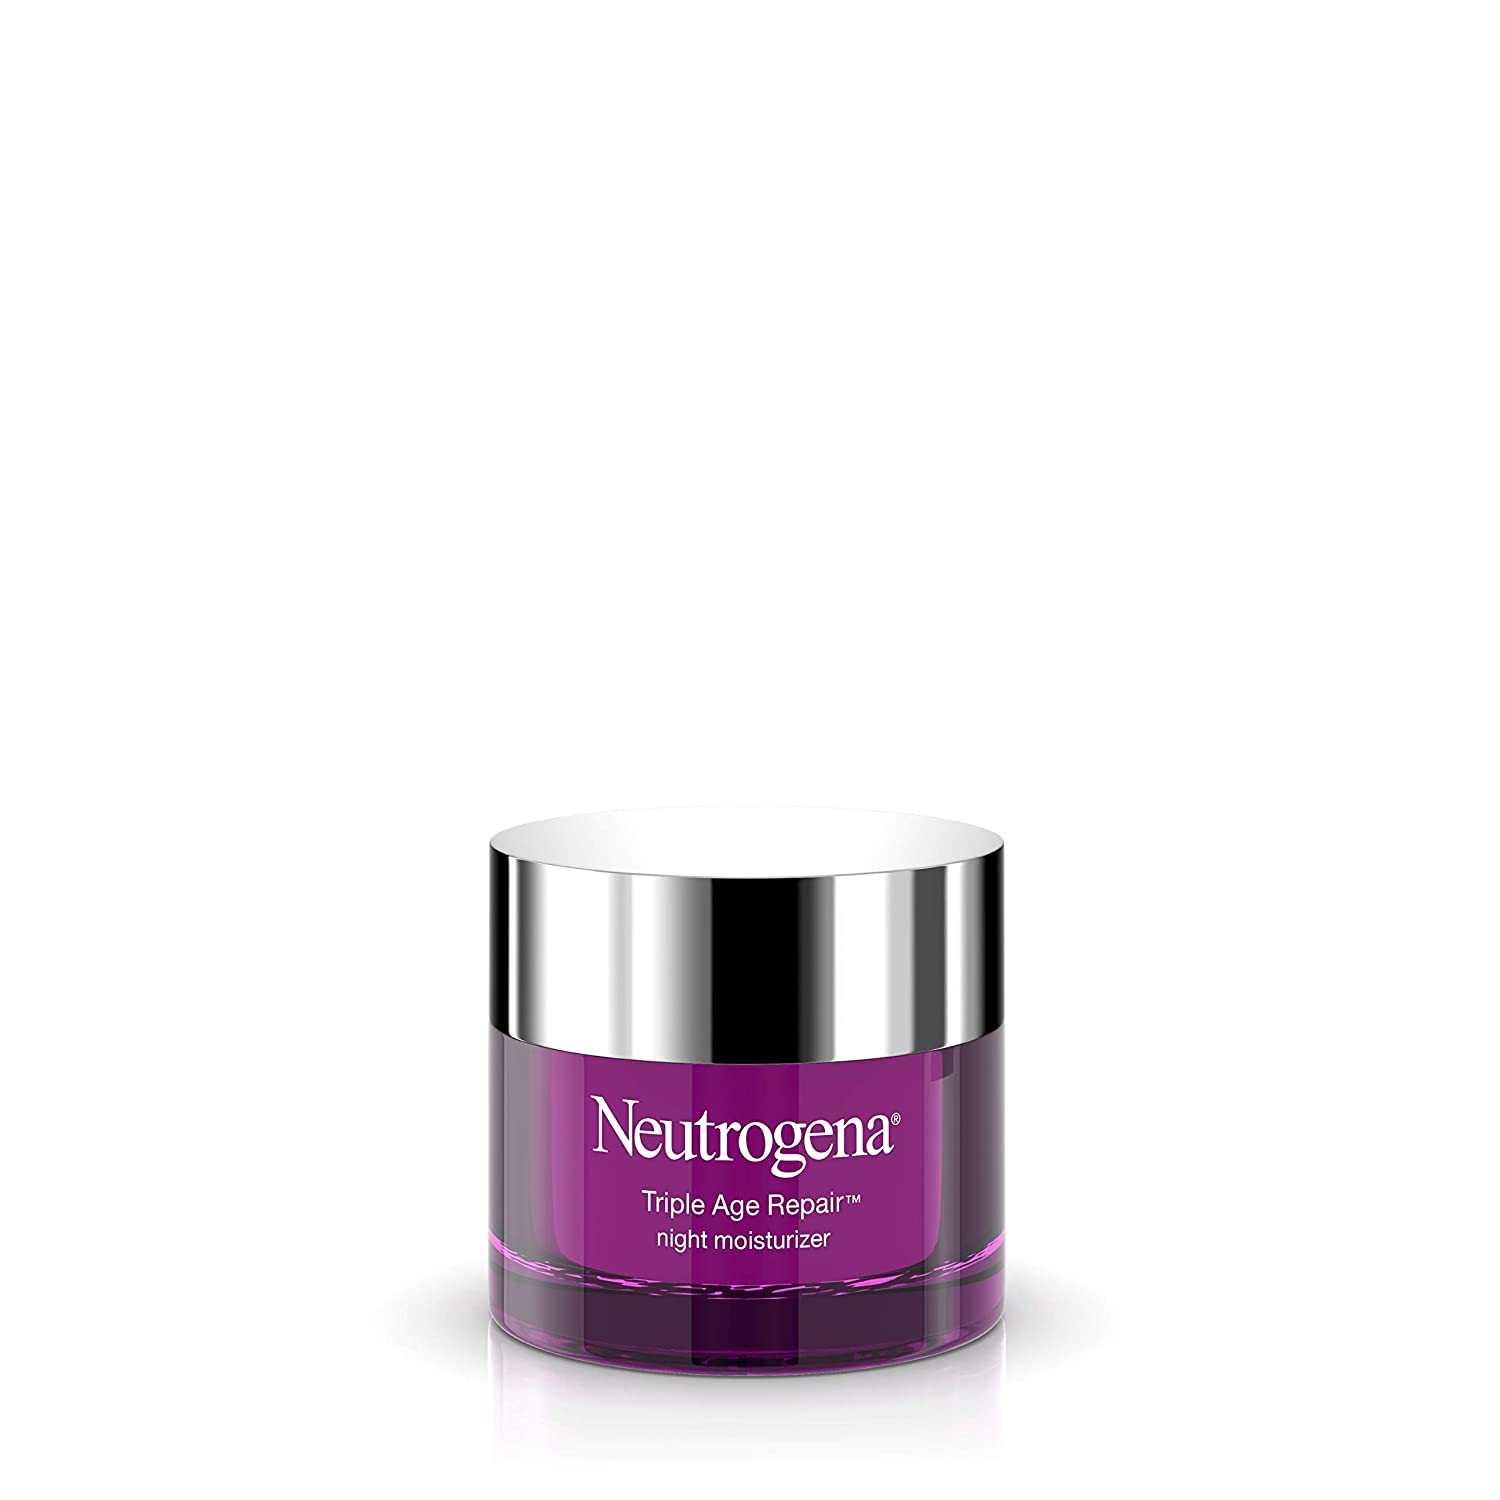 Neutrogena Triple Age Repair Anti-Aging Night Cream